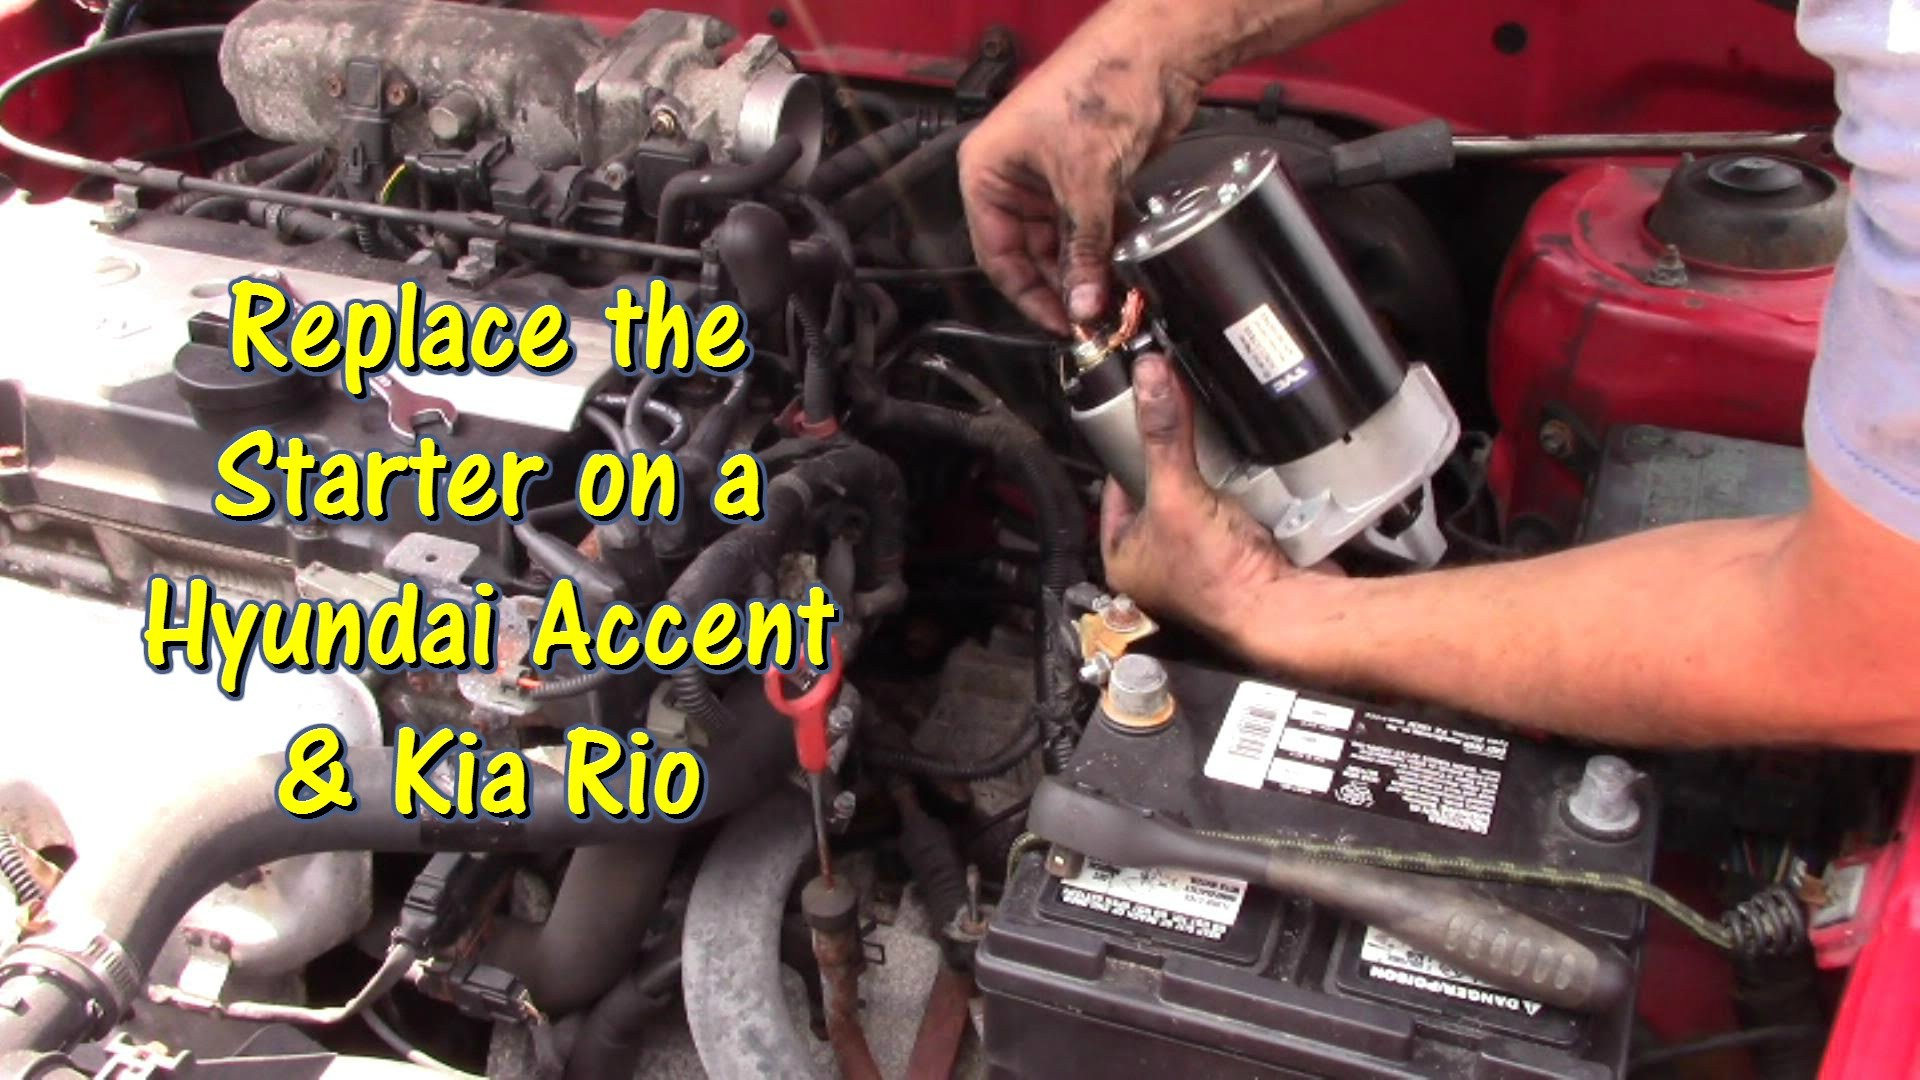 2009 Hyundai Accent Engine Diagram How to Replace A Starter On A Hyundai  Accent & Kia